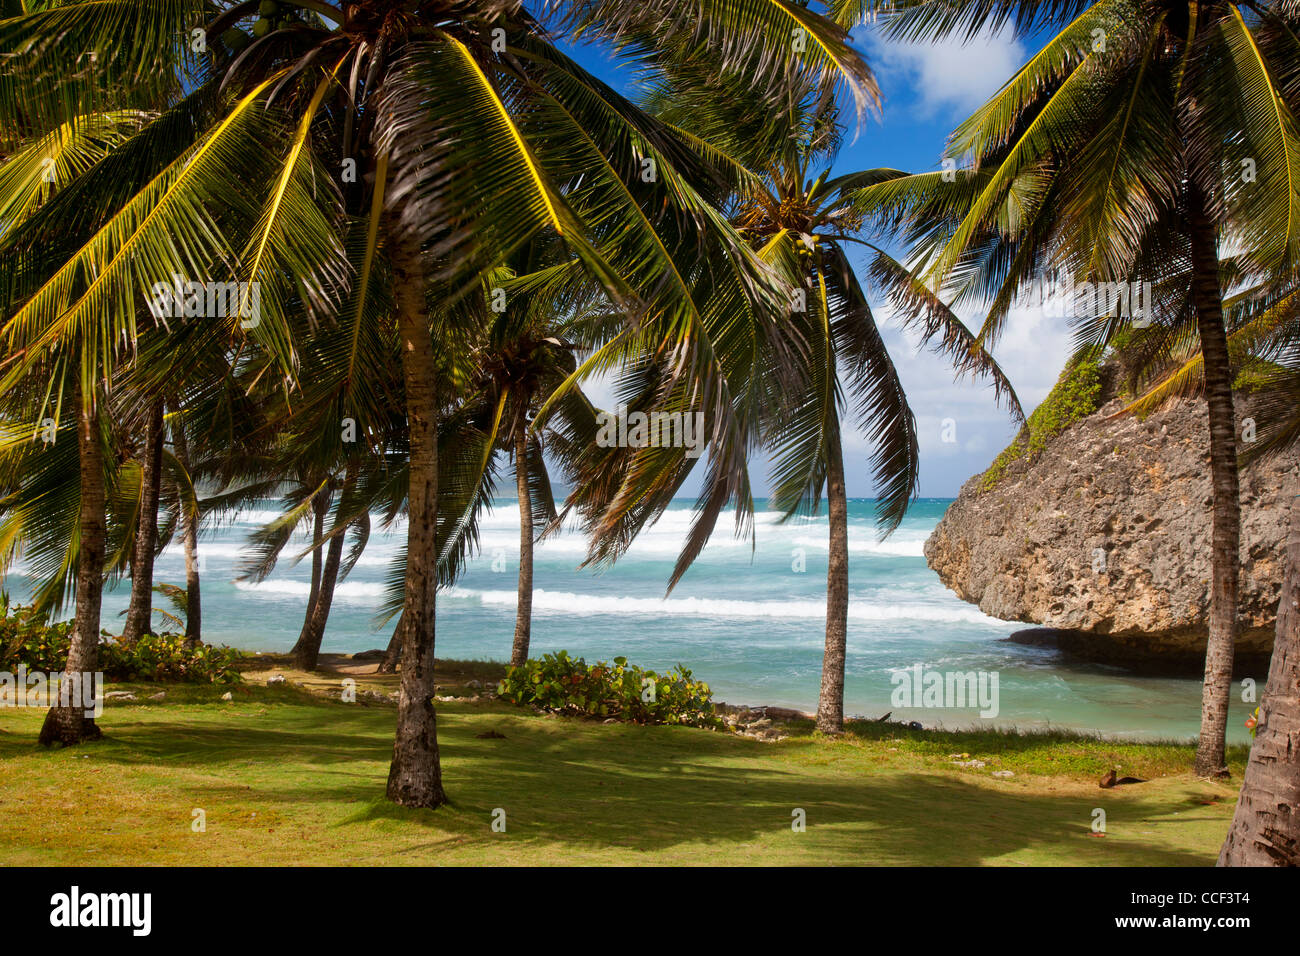 Barbados Bathsheba Stock Photos & Barbados Bathsheba Stock Images ...